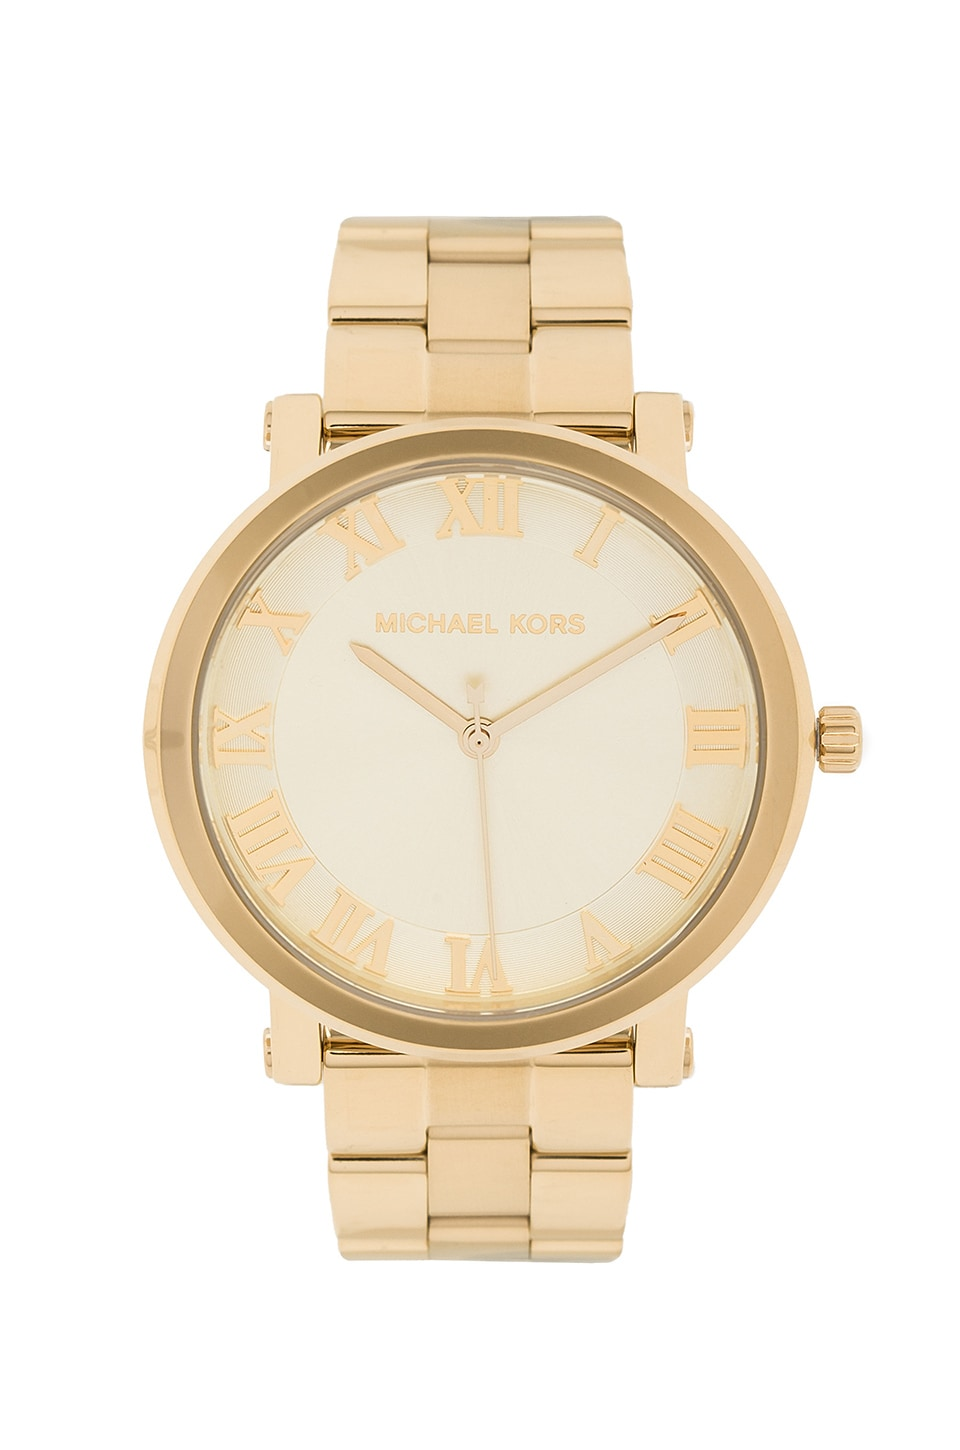 Michael Kors Norie Watch in Gold